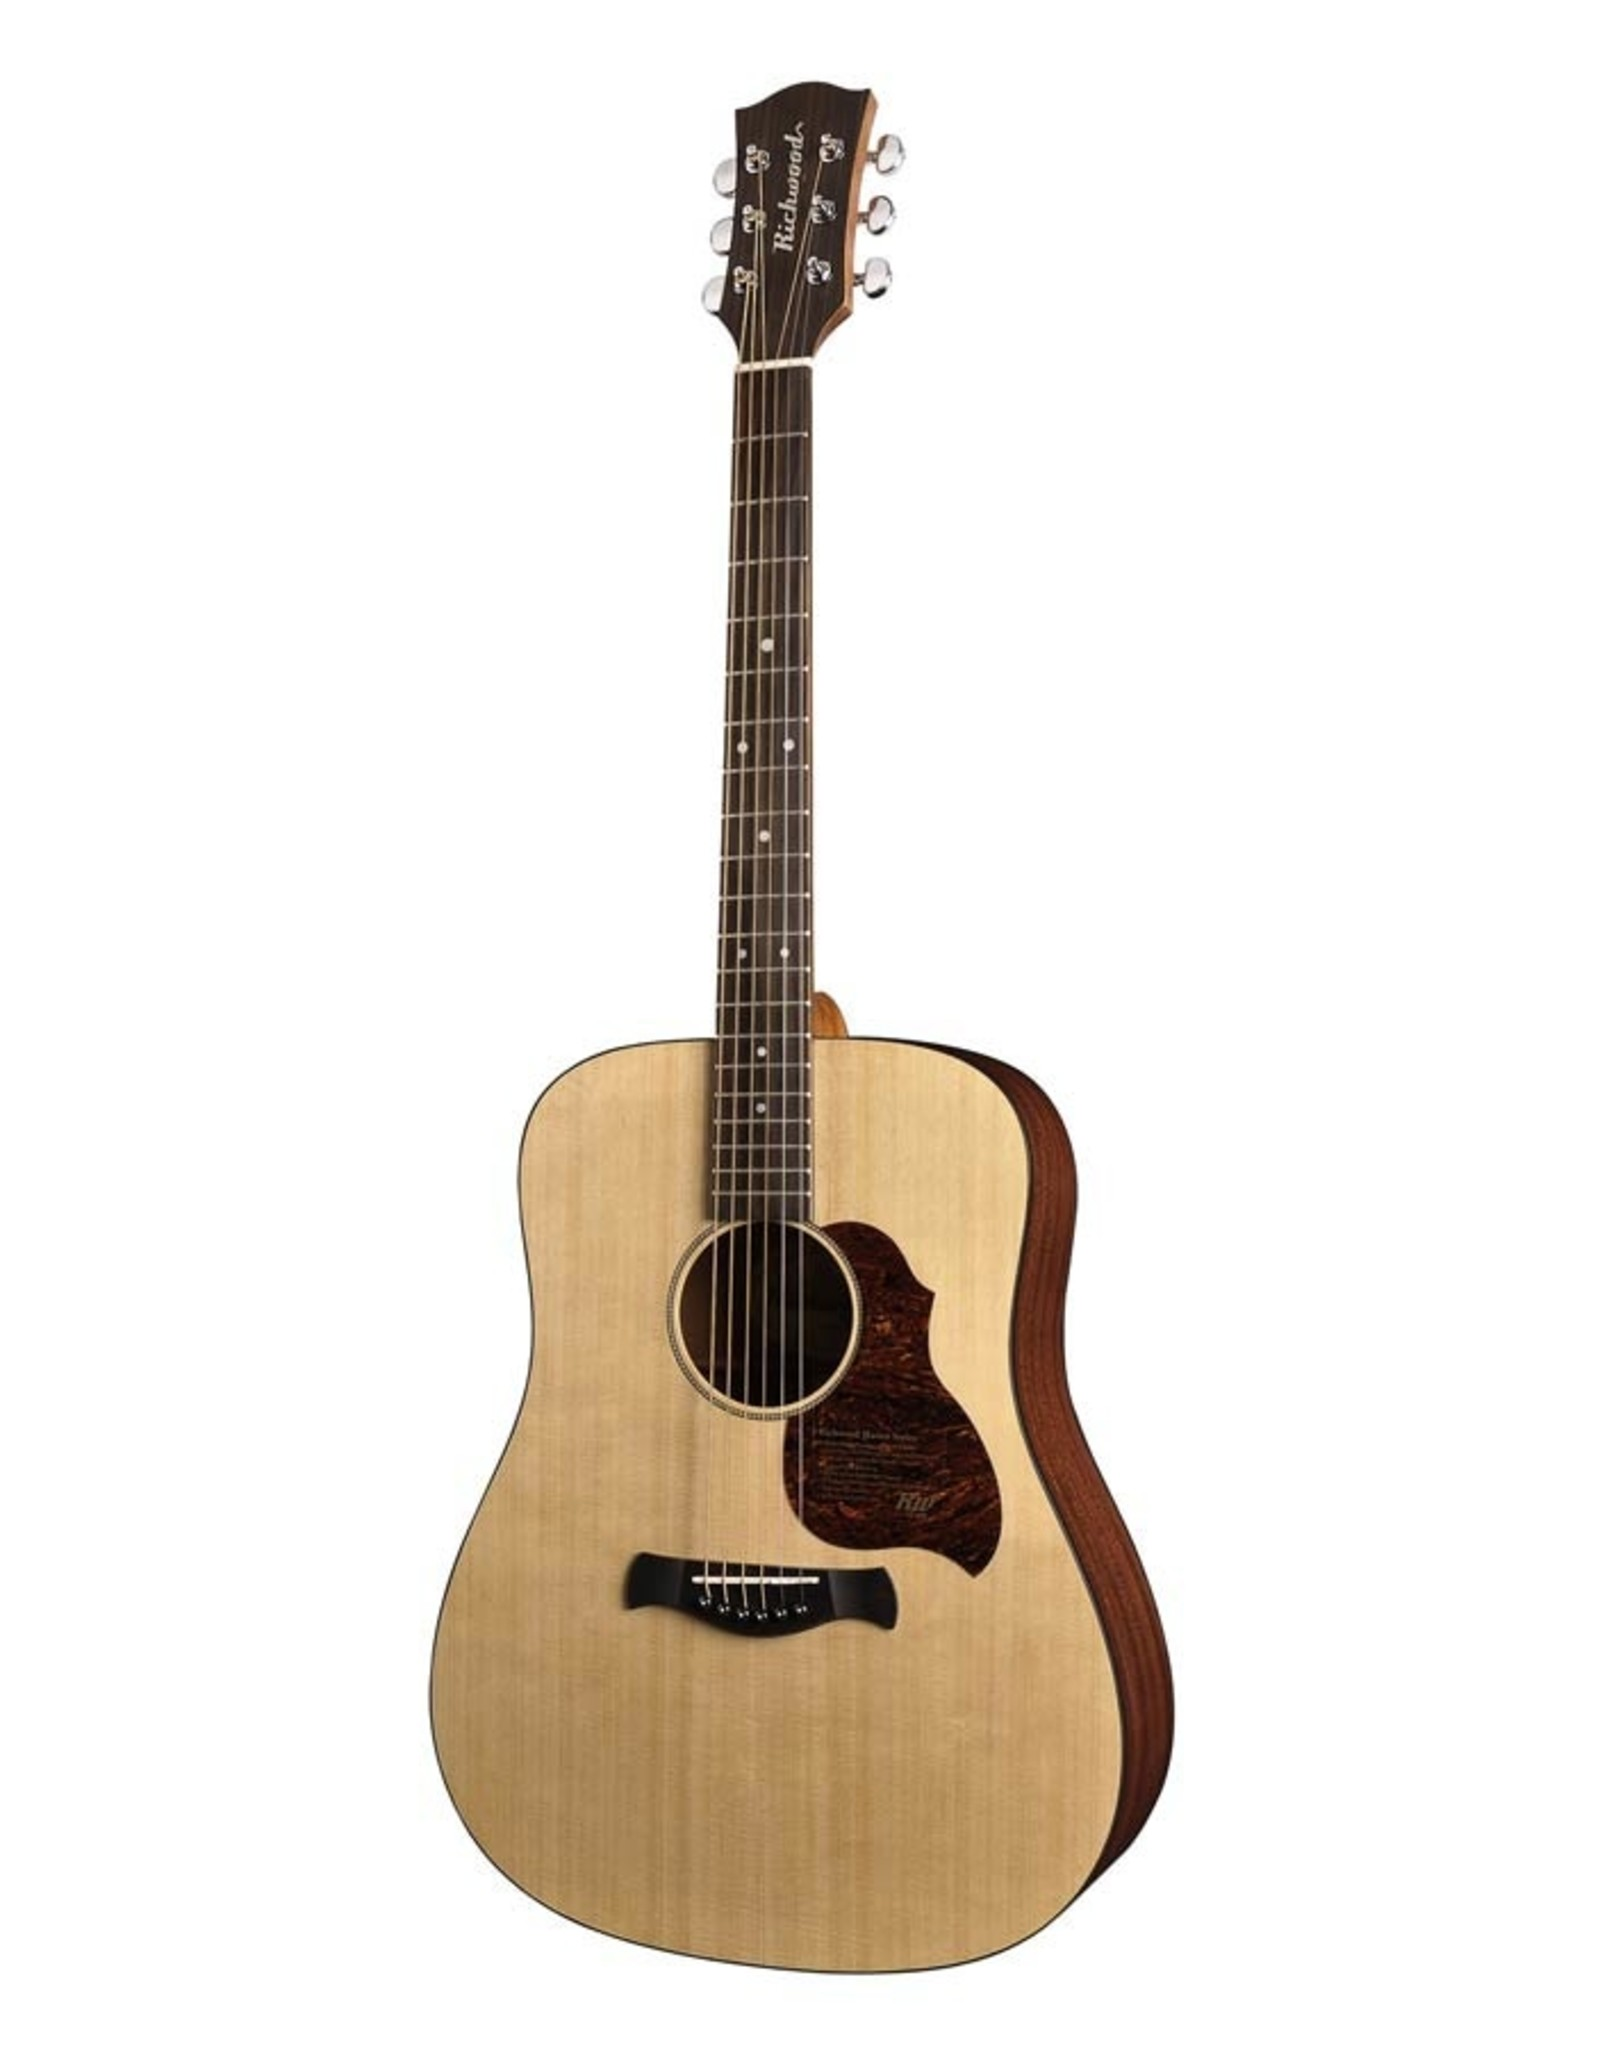 Richwood Richwood D-20 Master Series Dreadnought